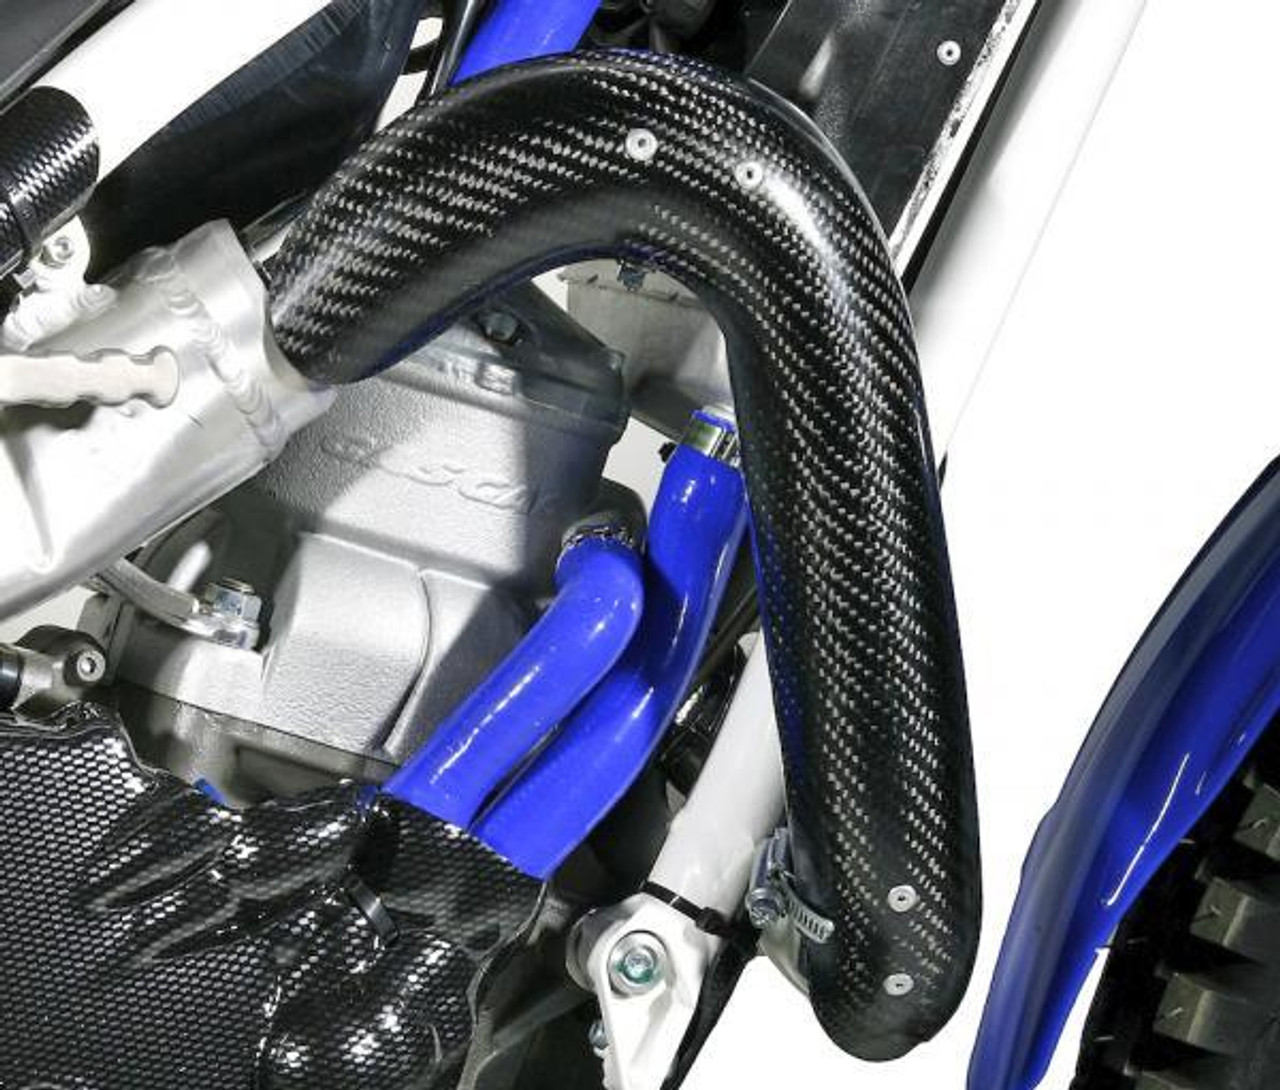 JI205-0202 Carbon fibre exhaust guard